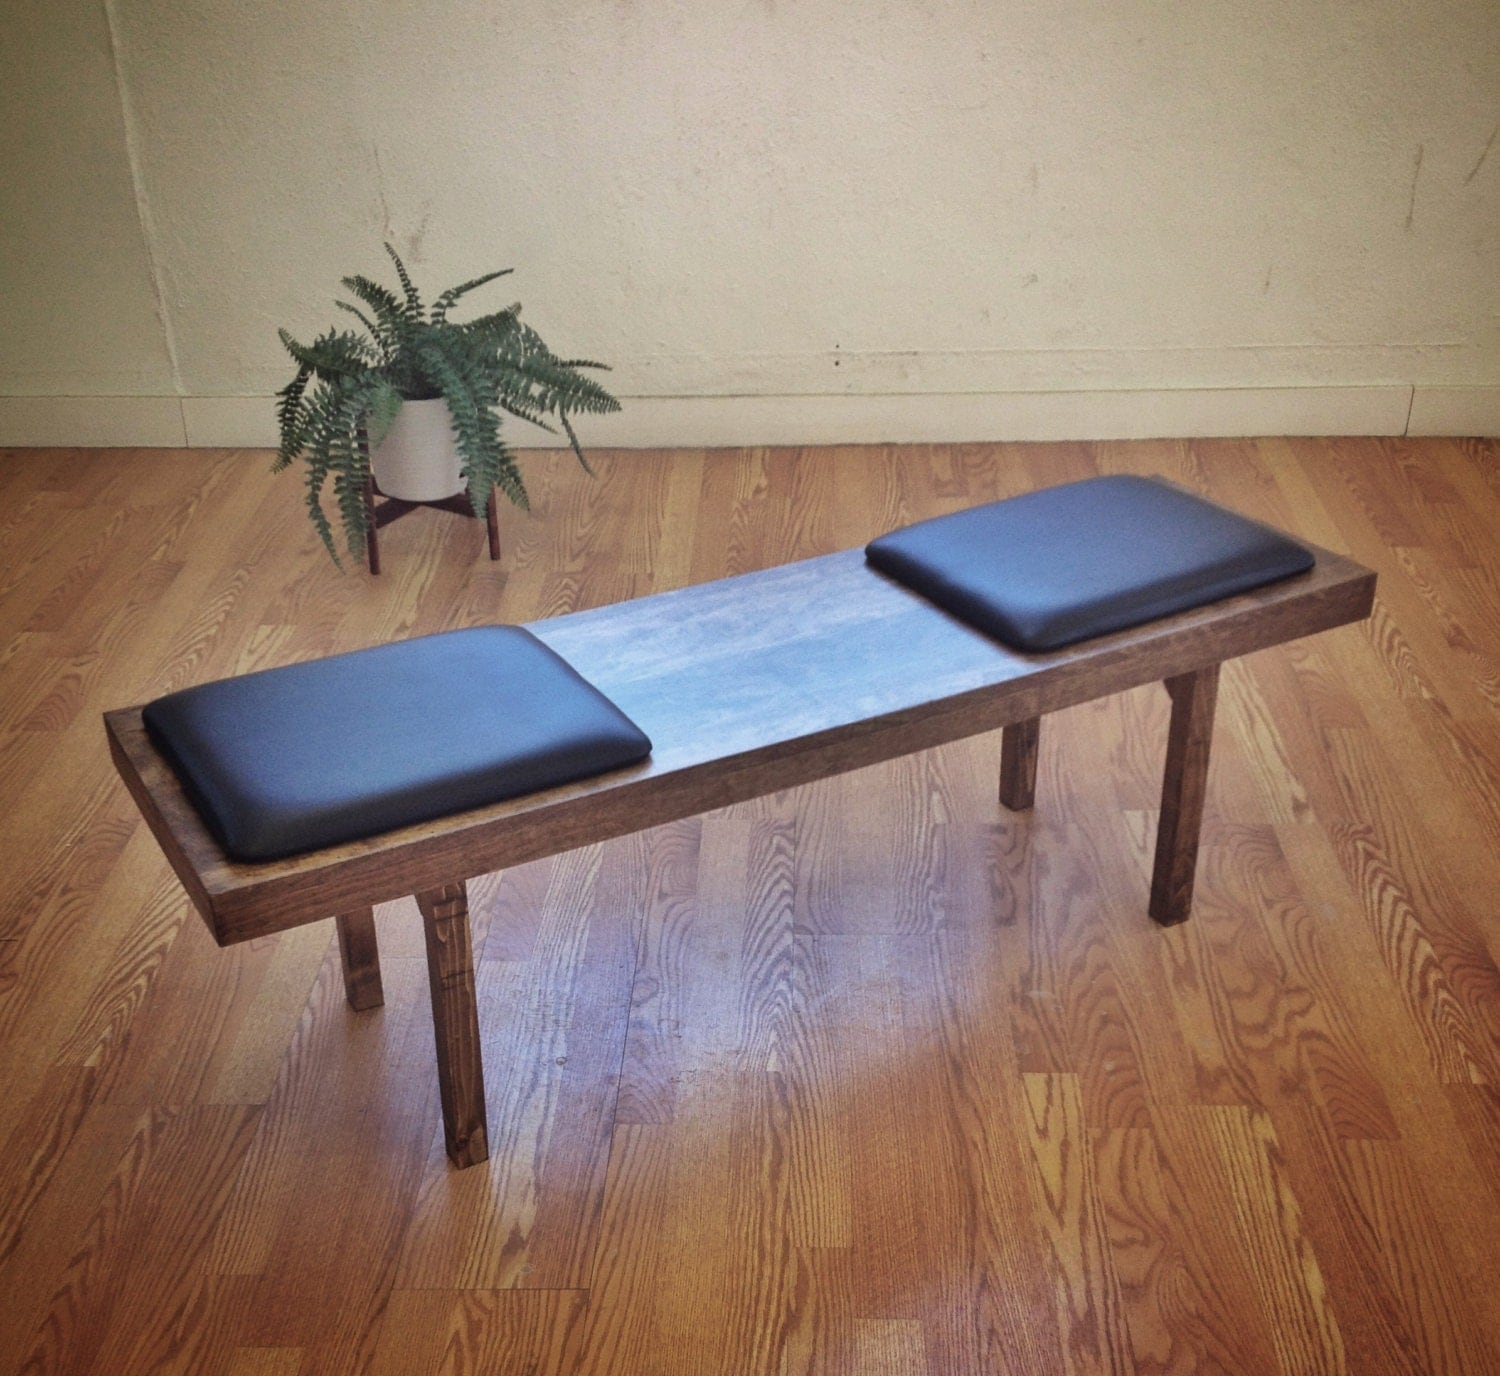 Olson Platform Bench Mid Century Modern Furniture Design